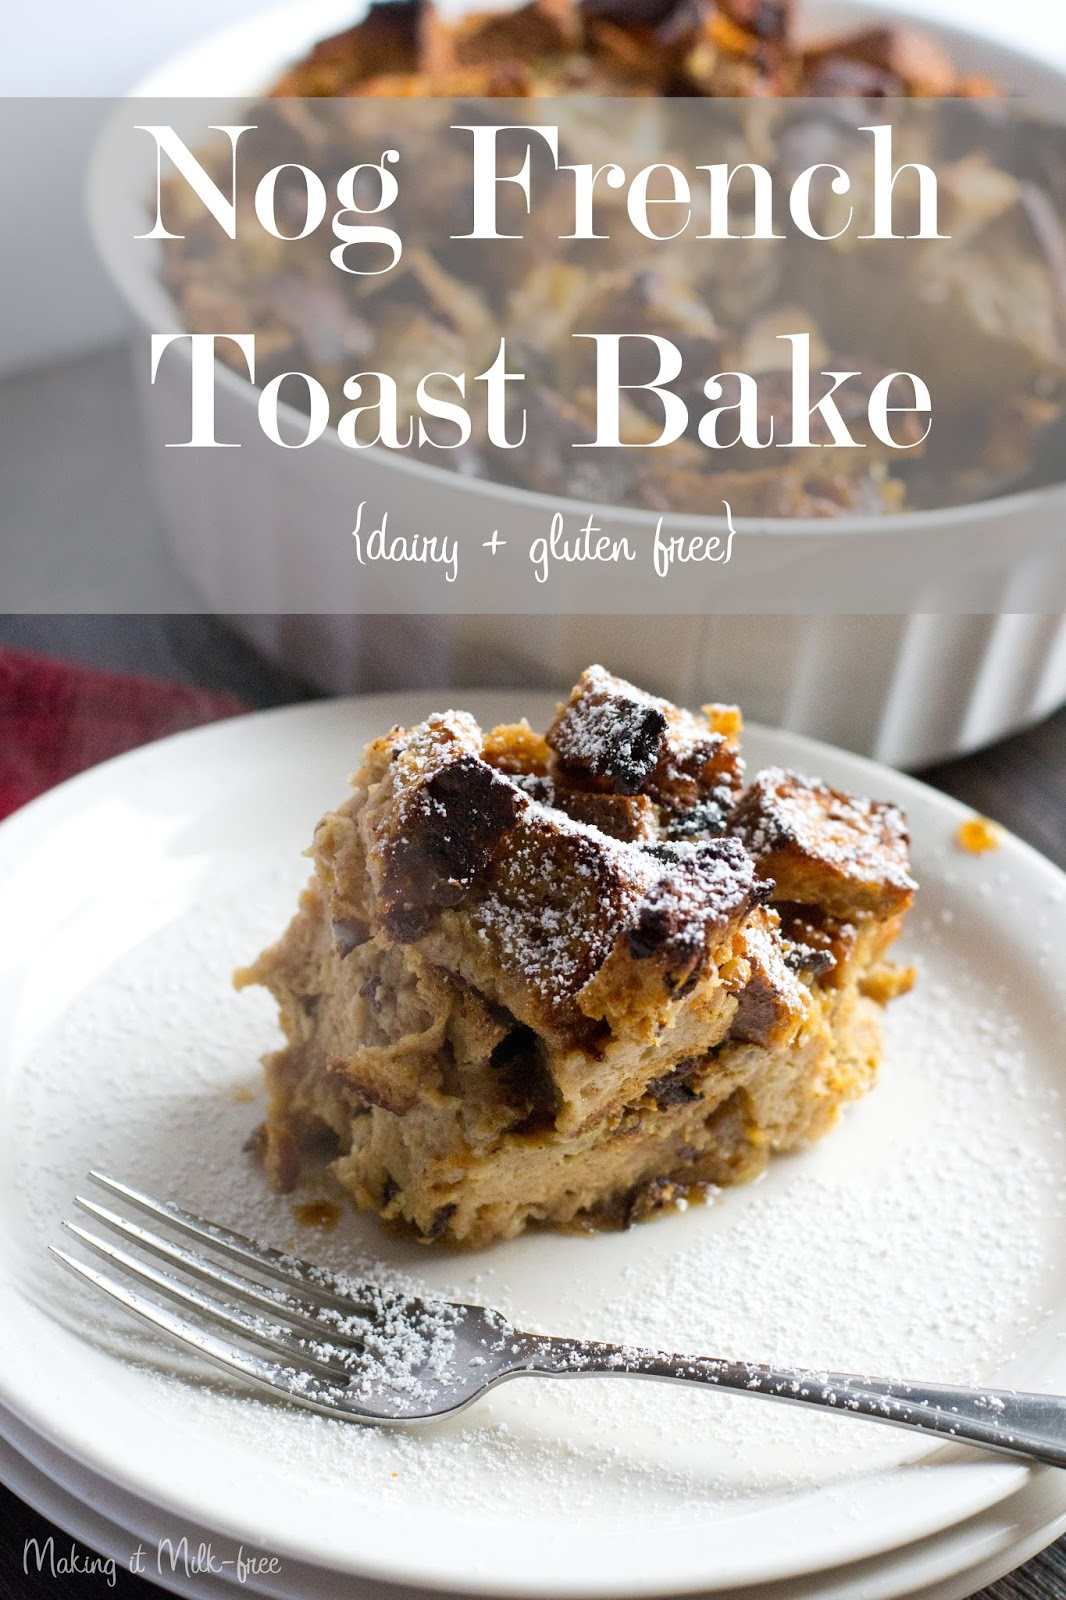 Nog French Toast Bake {dairy + gluten free} from Making it Milk-free